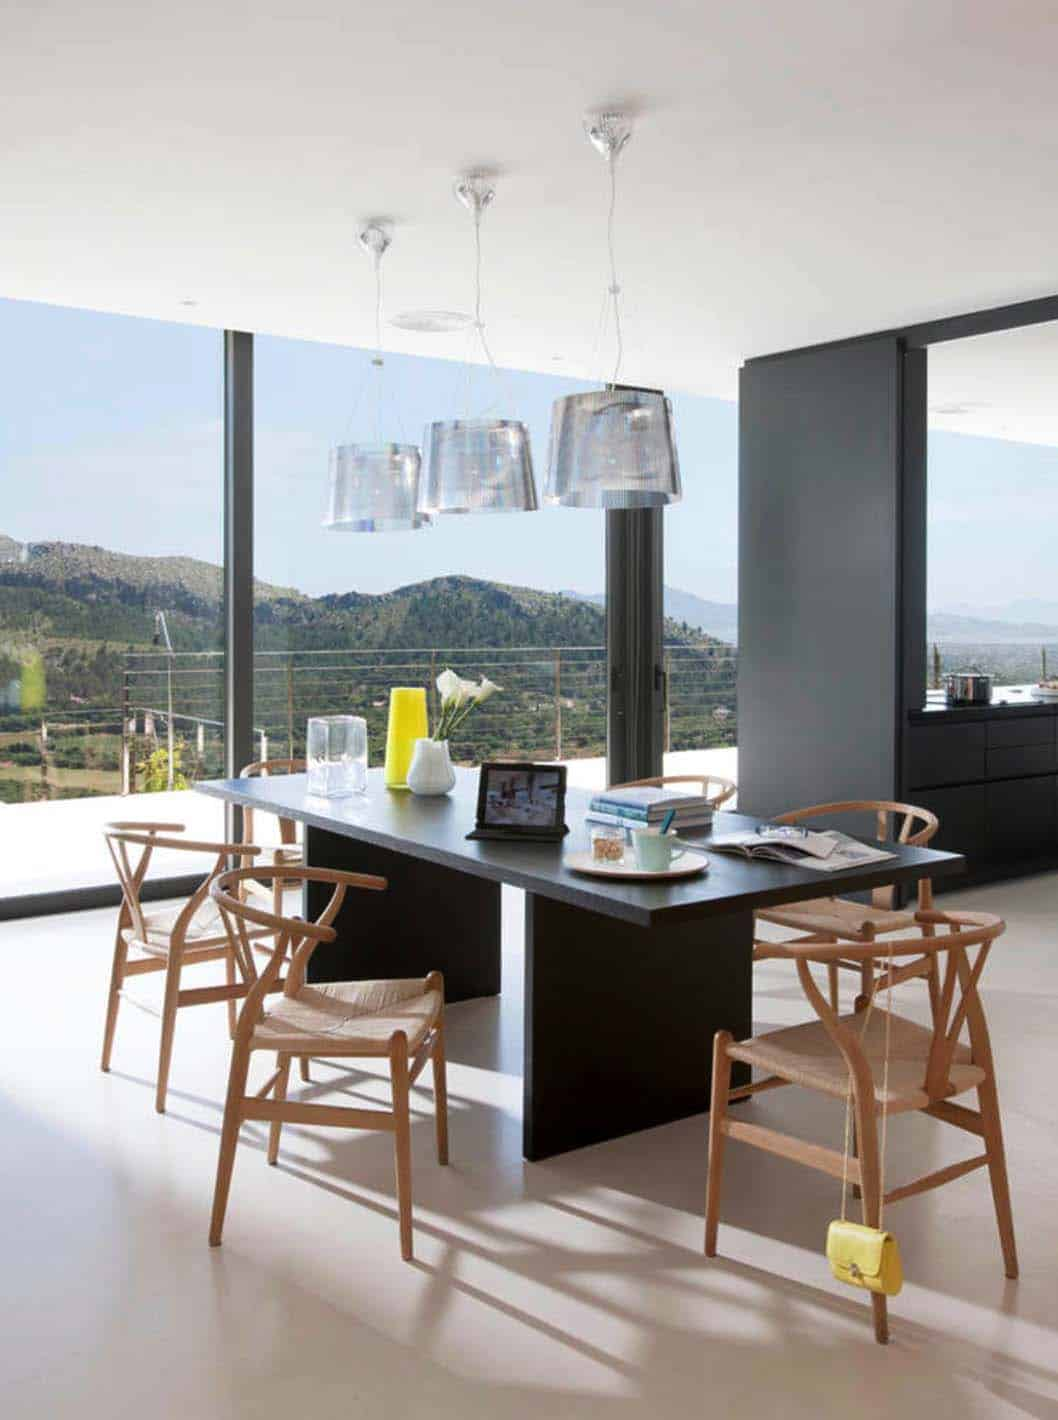 Contemporary Mountain House-Miquel Lacomba-18-1 Kindesign